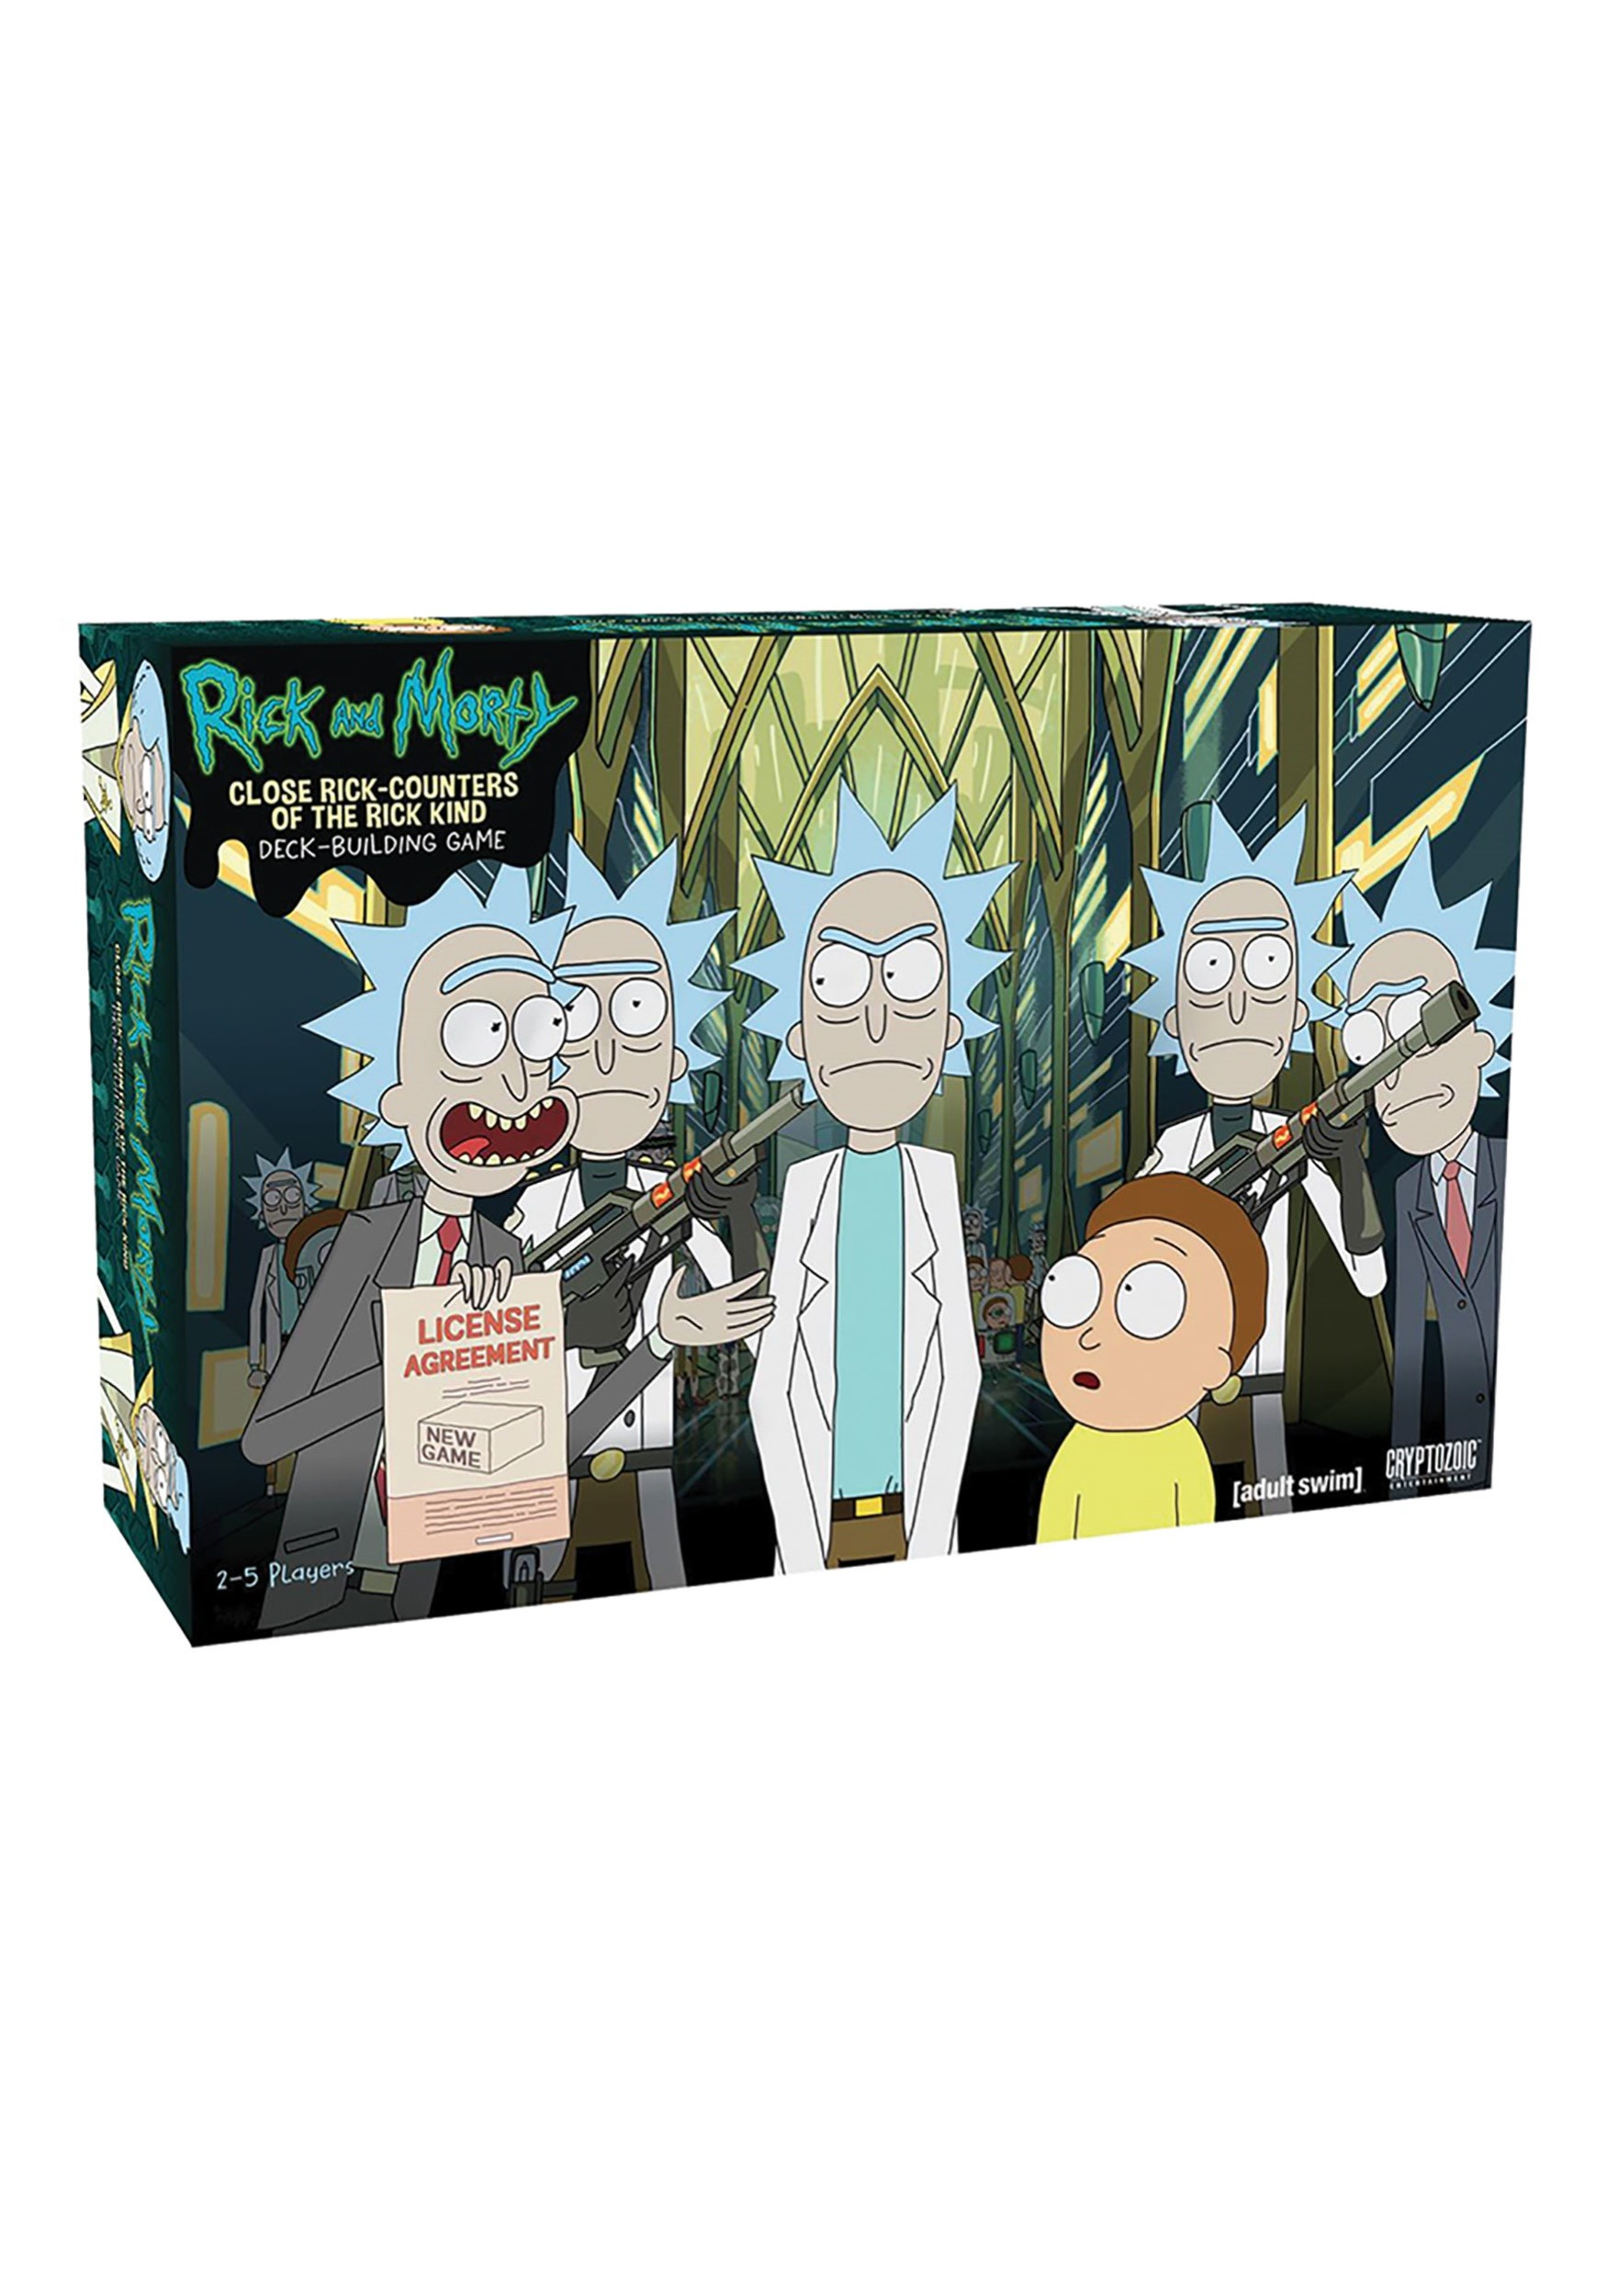 Close_Rick-Counters_Rick_and_Morty_Deck_Building_Game